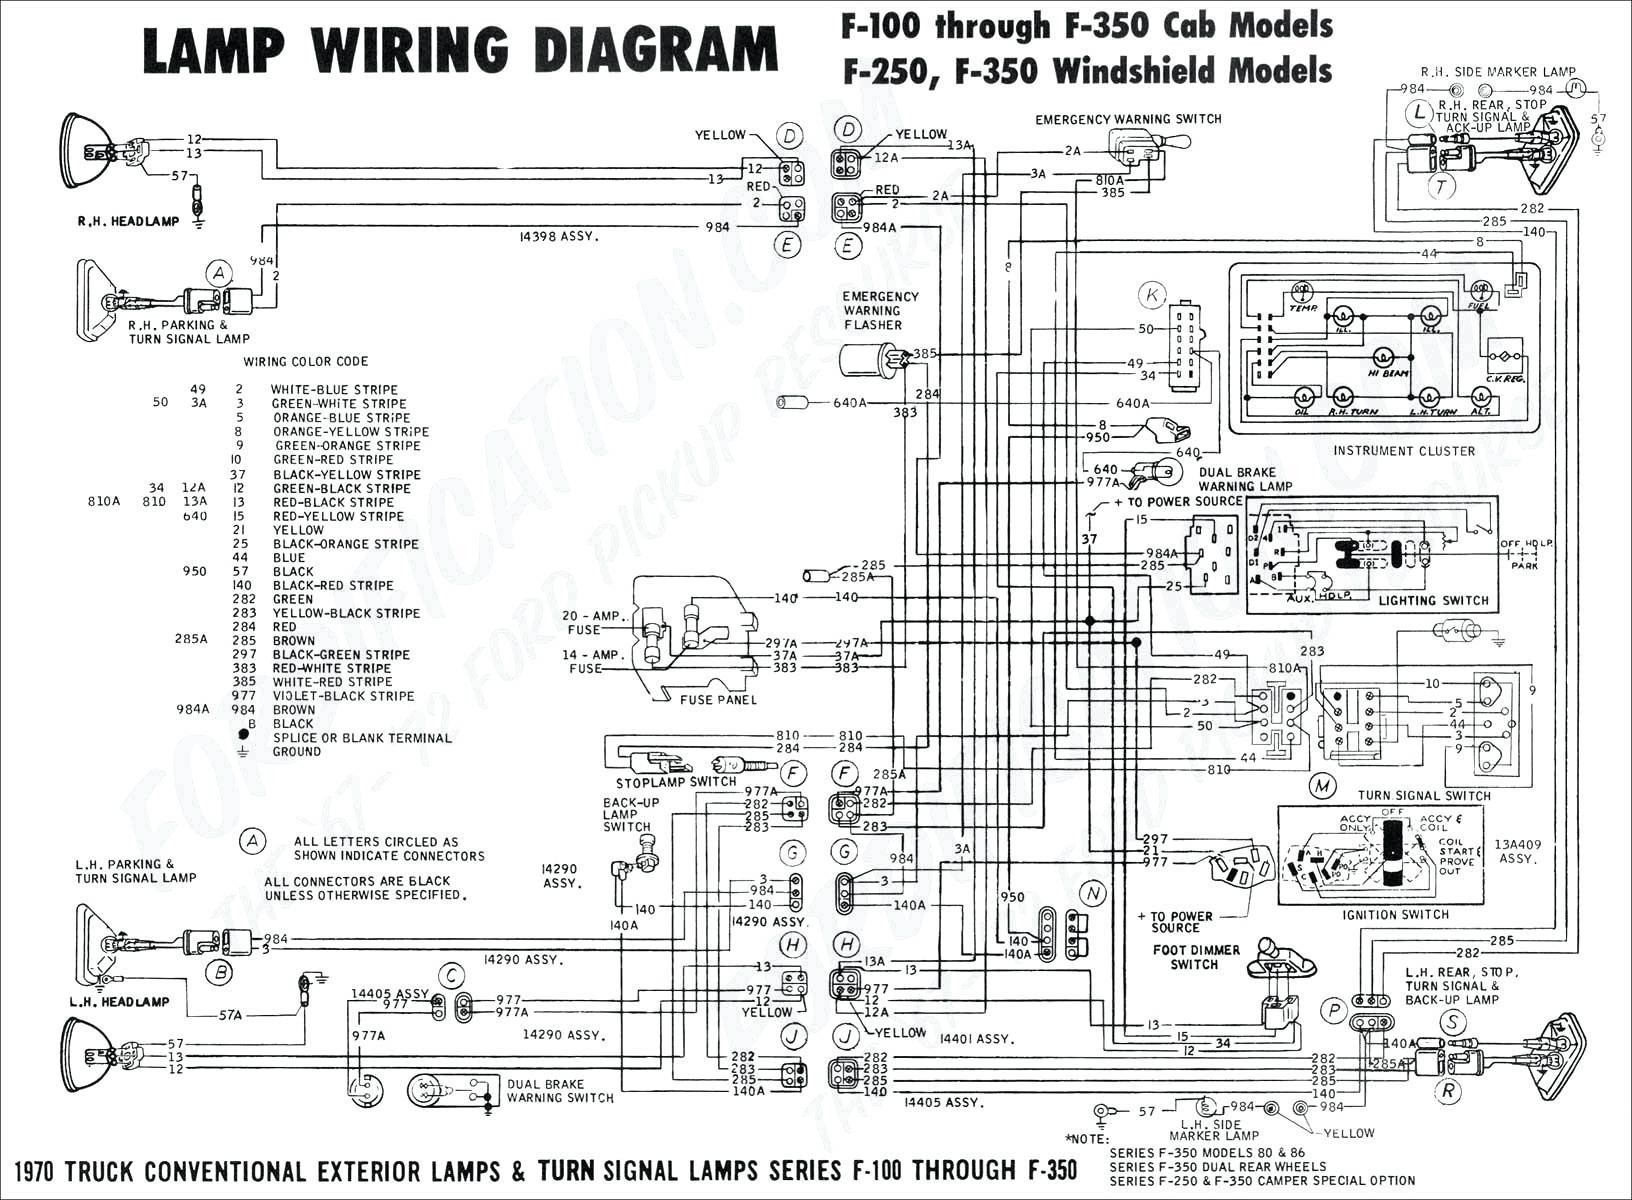 1964 ford 2000 tractor wiring diagram mitc wiring diagram e2 wiring diagram  mitc wiring diagram e2 wiring diagram